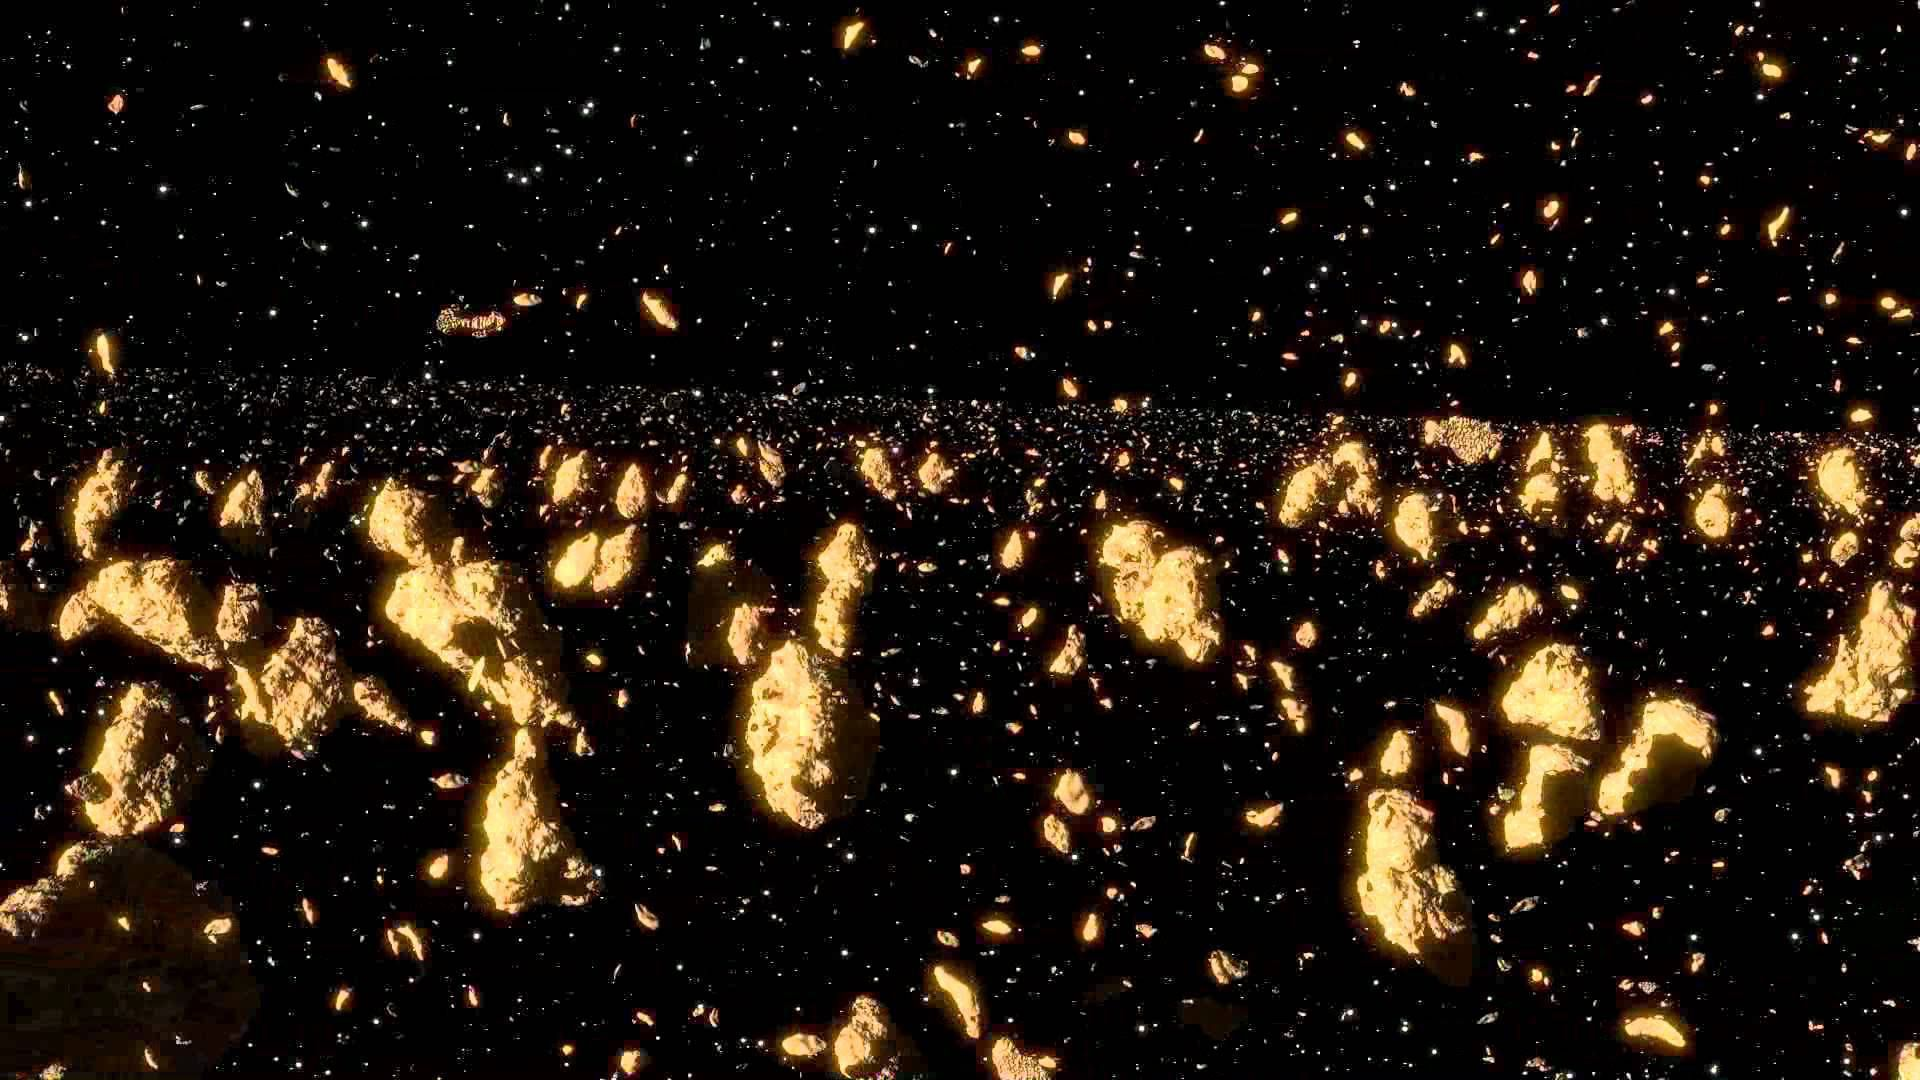 Asteroid Belt Background